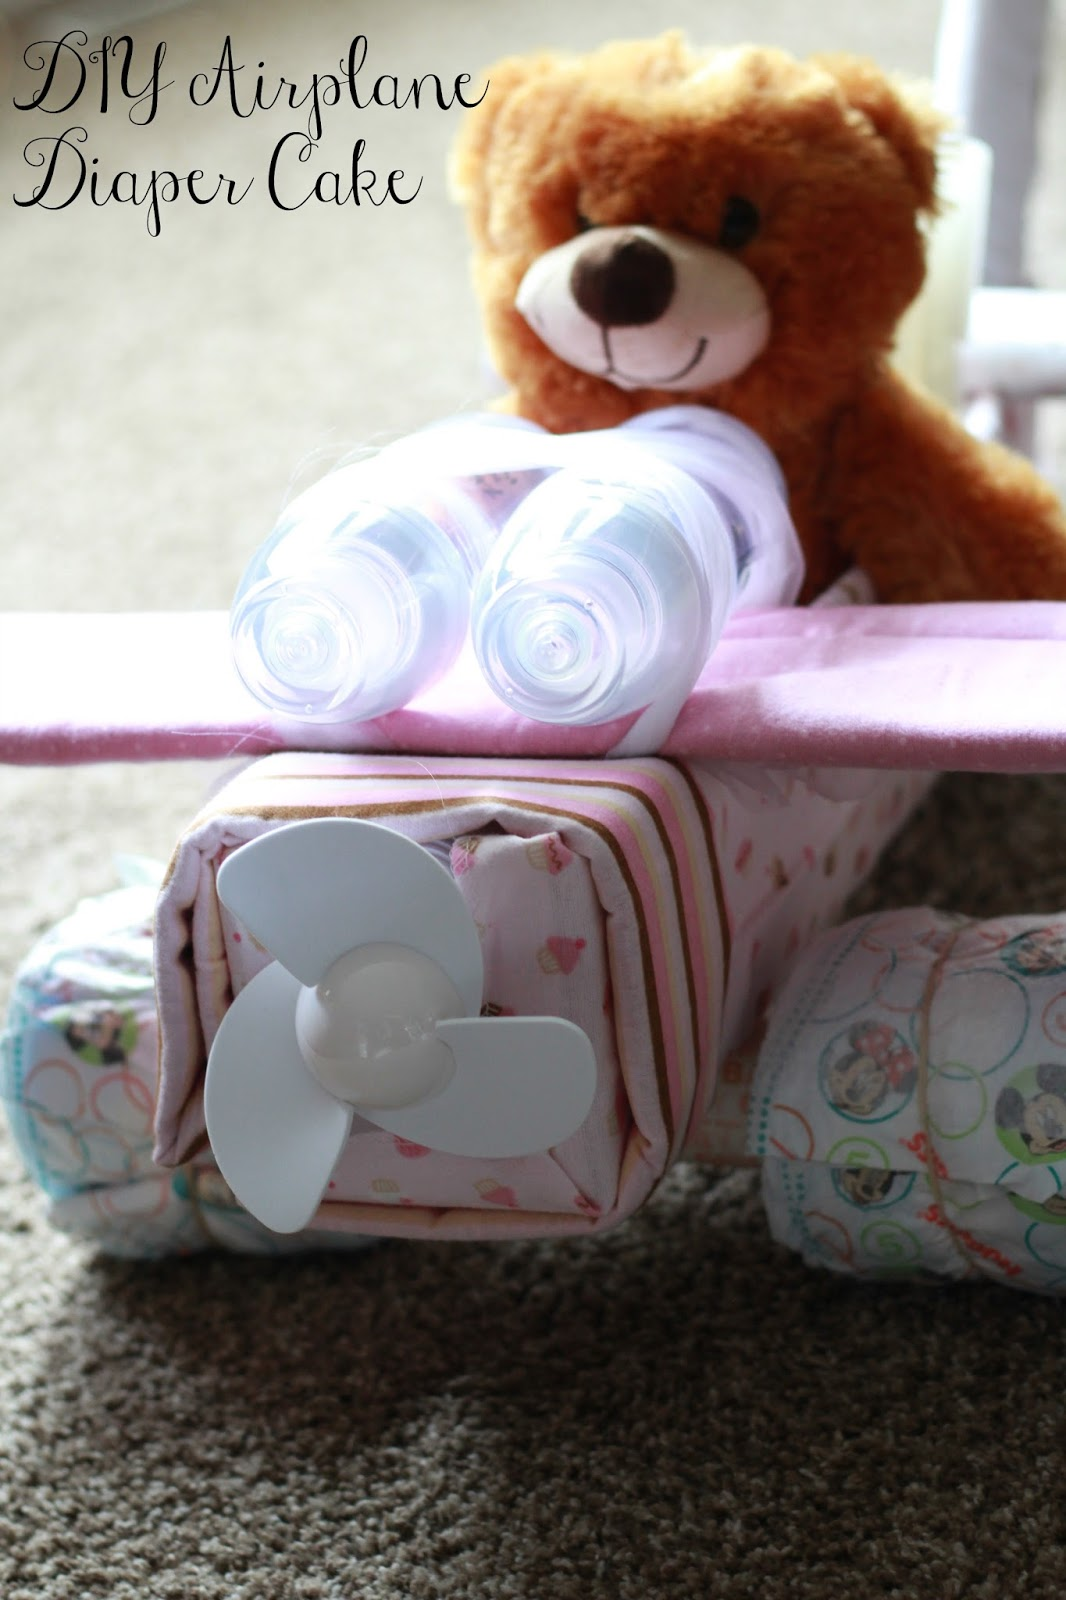 DIY Airplane Diaper Cake graphic